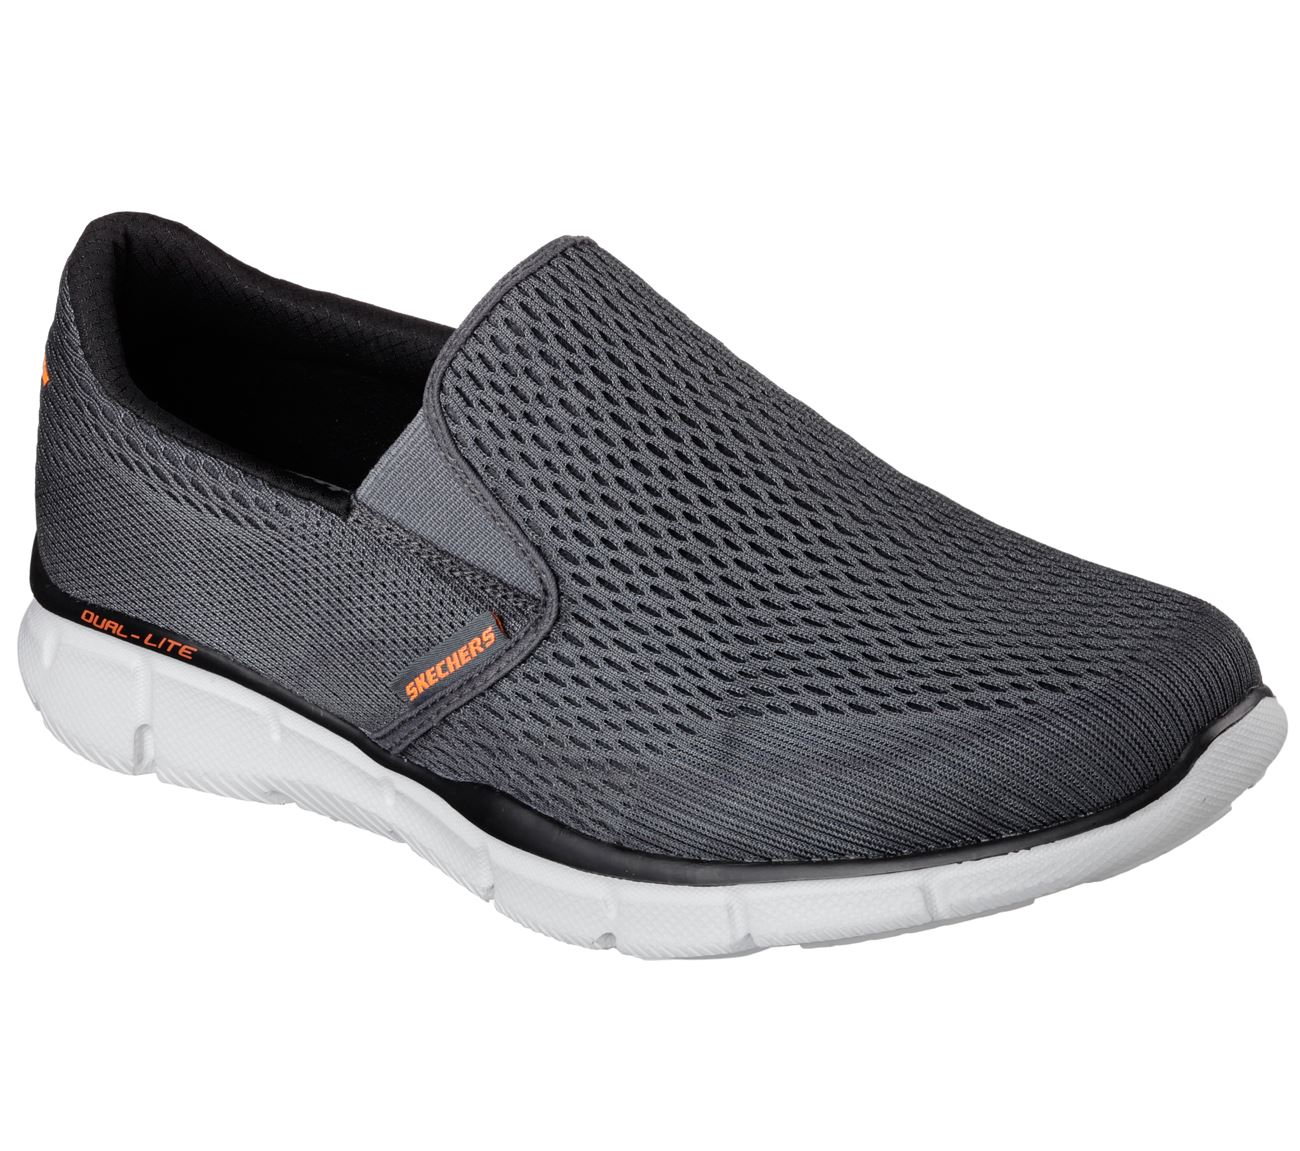 SKECHERS Men's Equalizer-Double Play Trainers in Charcoal orange,Size UK5.5-UK13